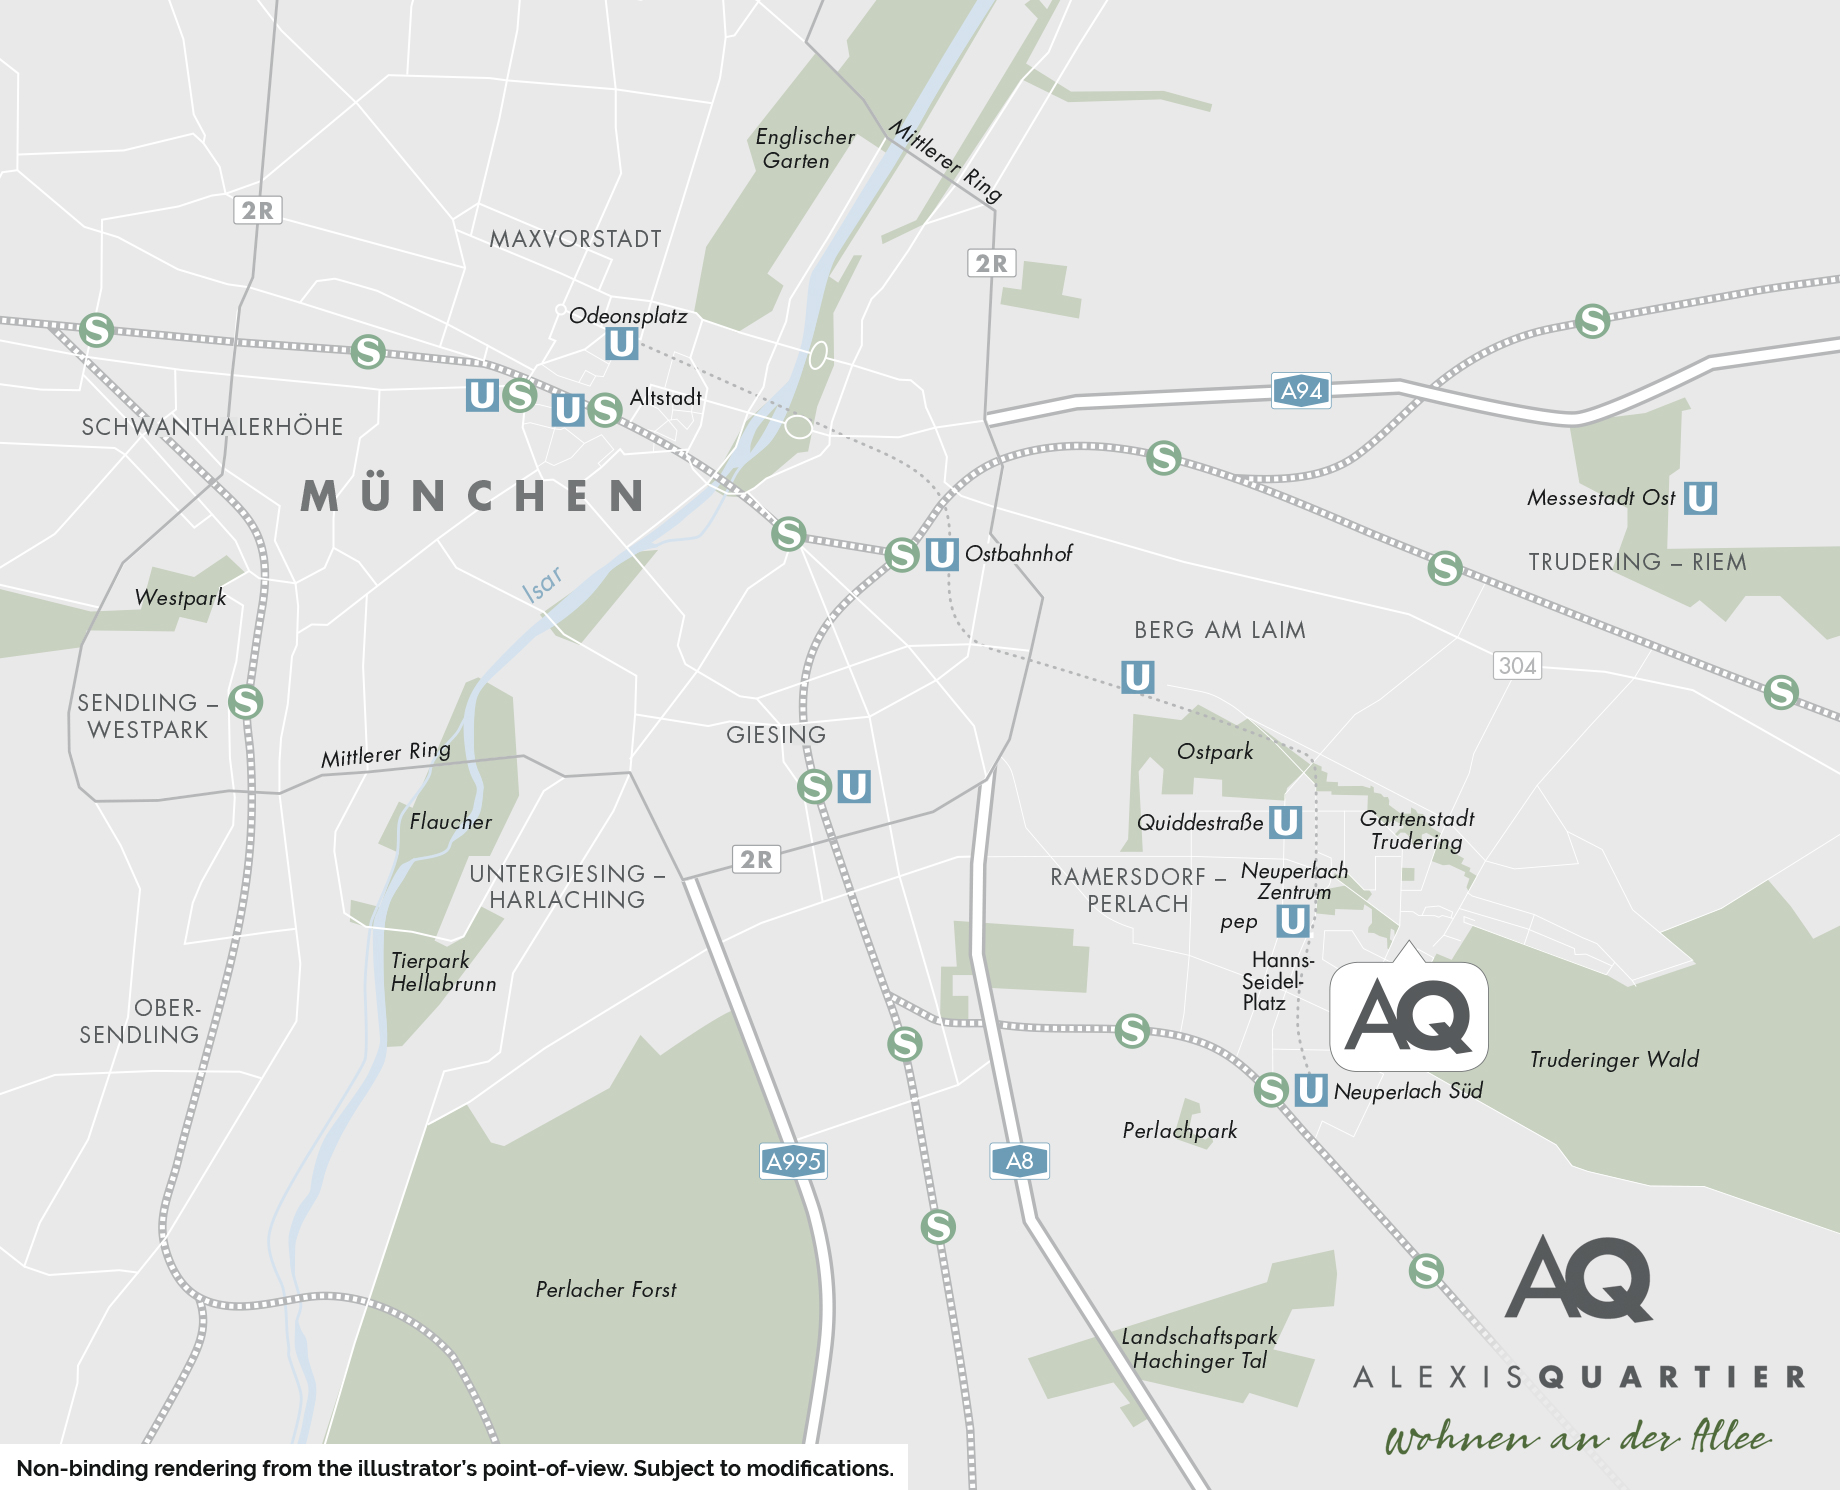 Property Alexisquartier - Wohnen an der Allee - section of city map 1